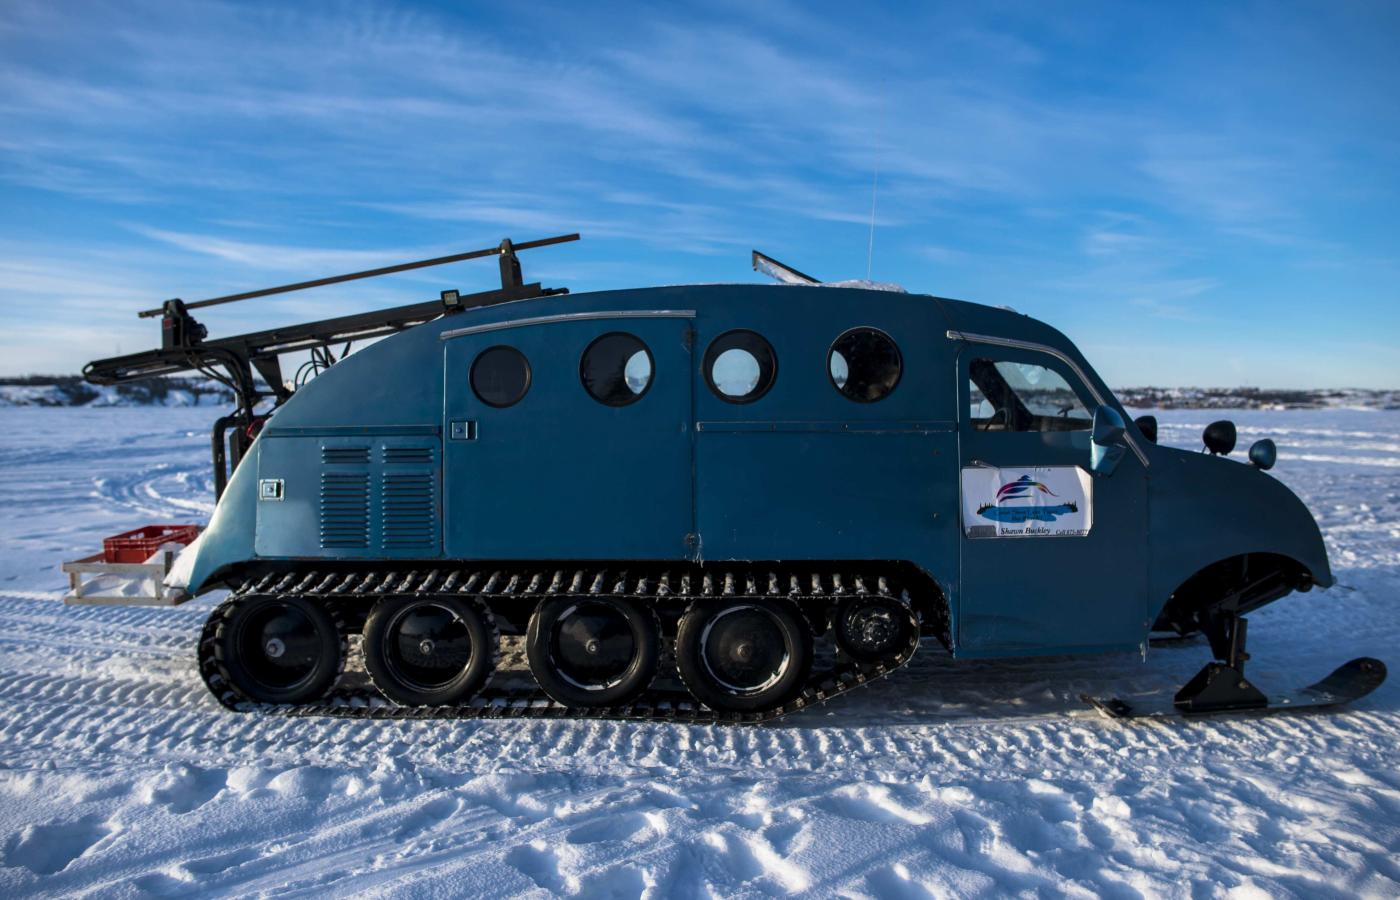 A bombardier snow machine in the Northwest Territories